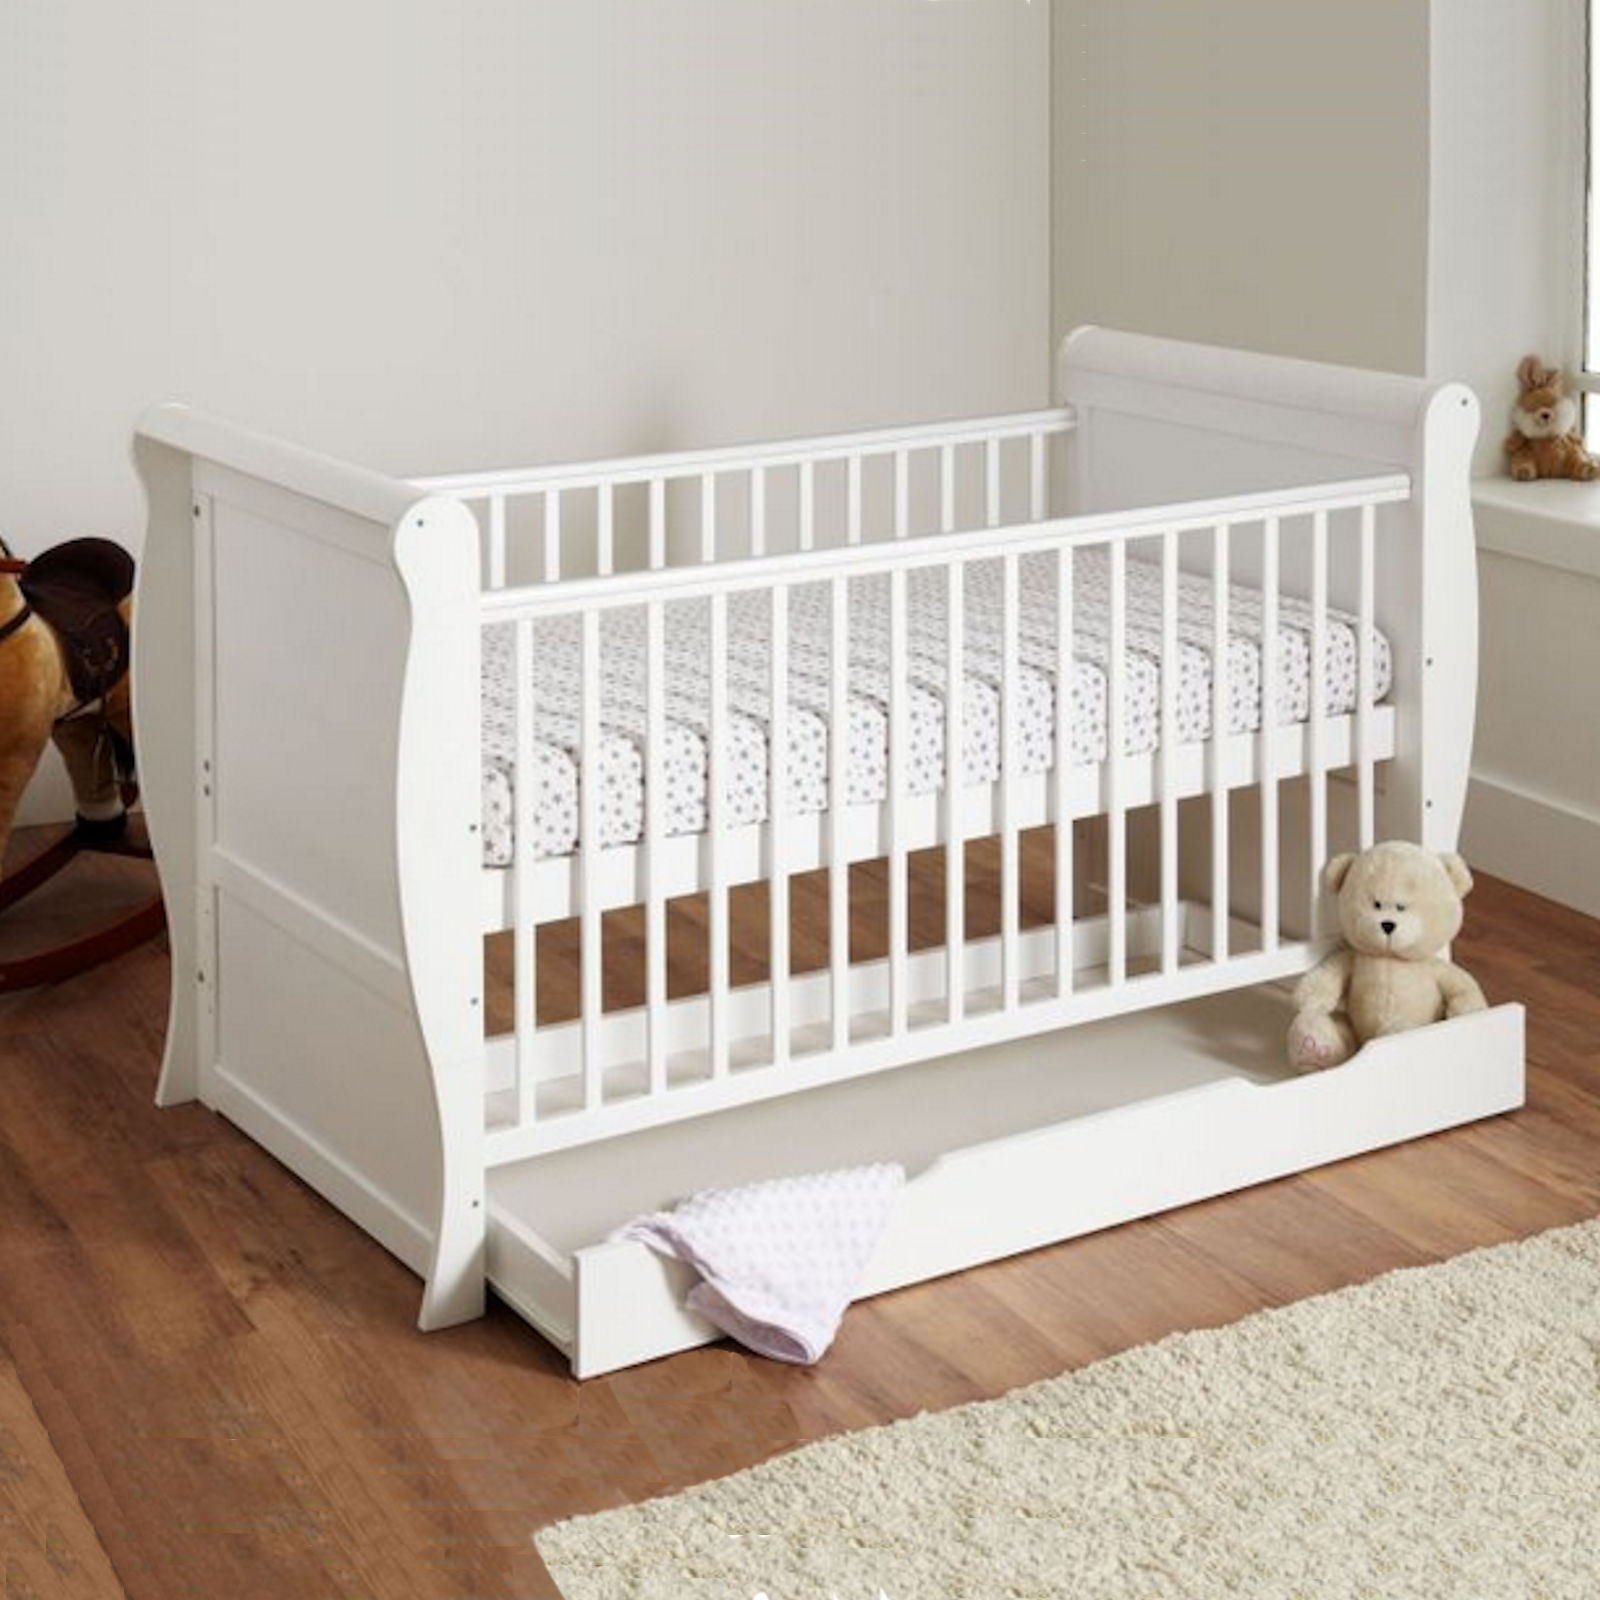 4baby 3 In 1 Sleigh Cot Bed White